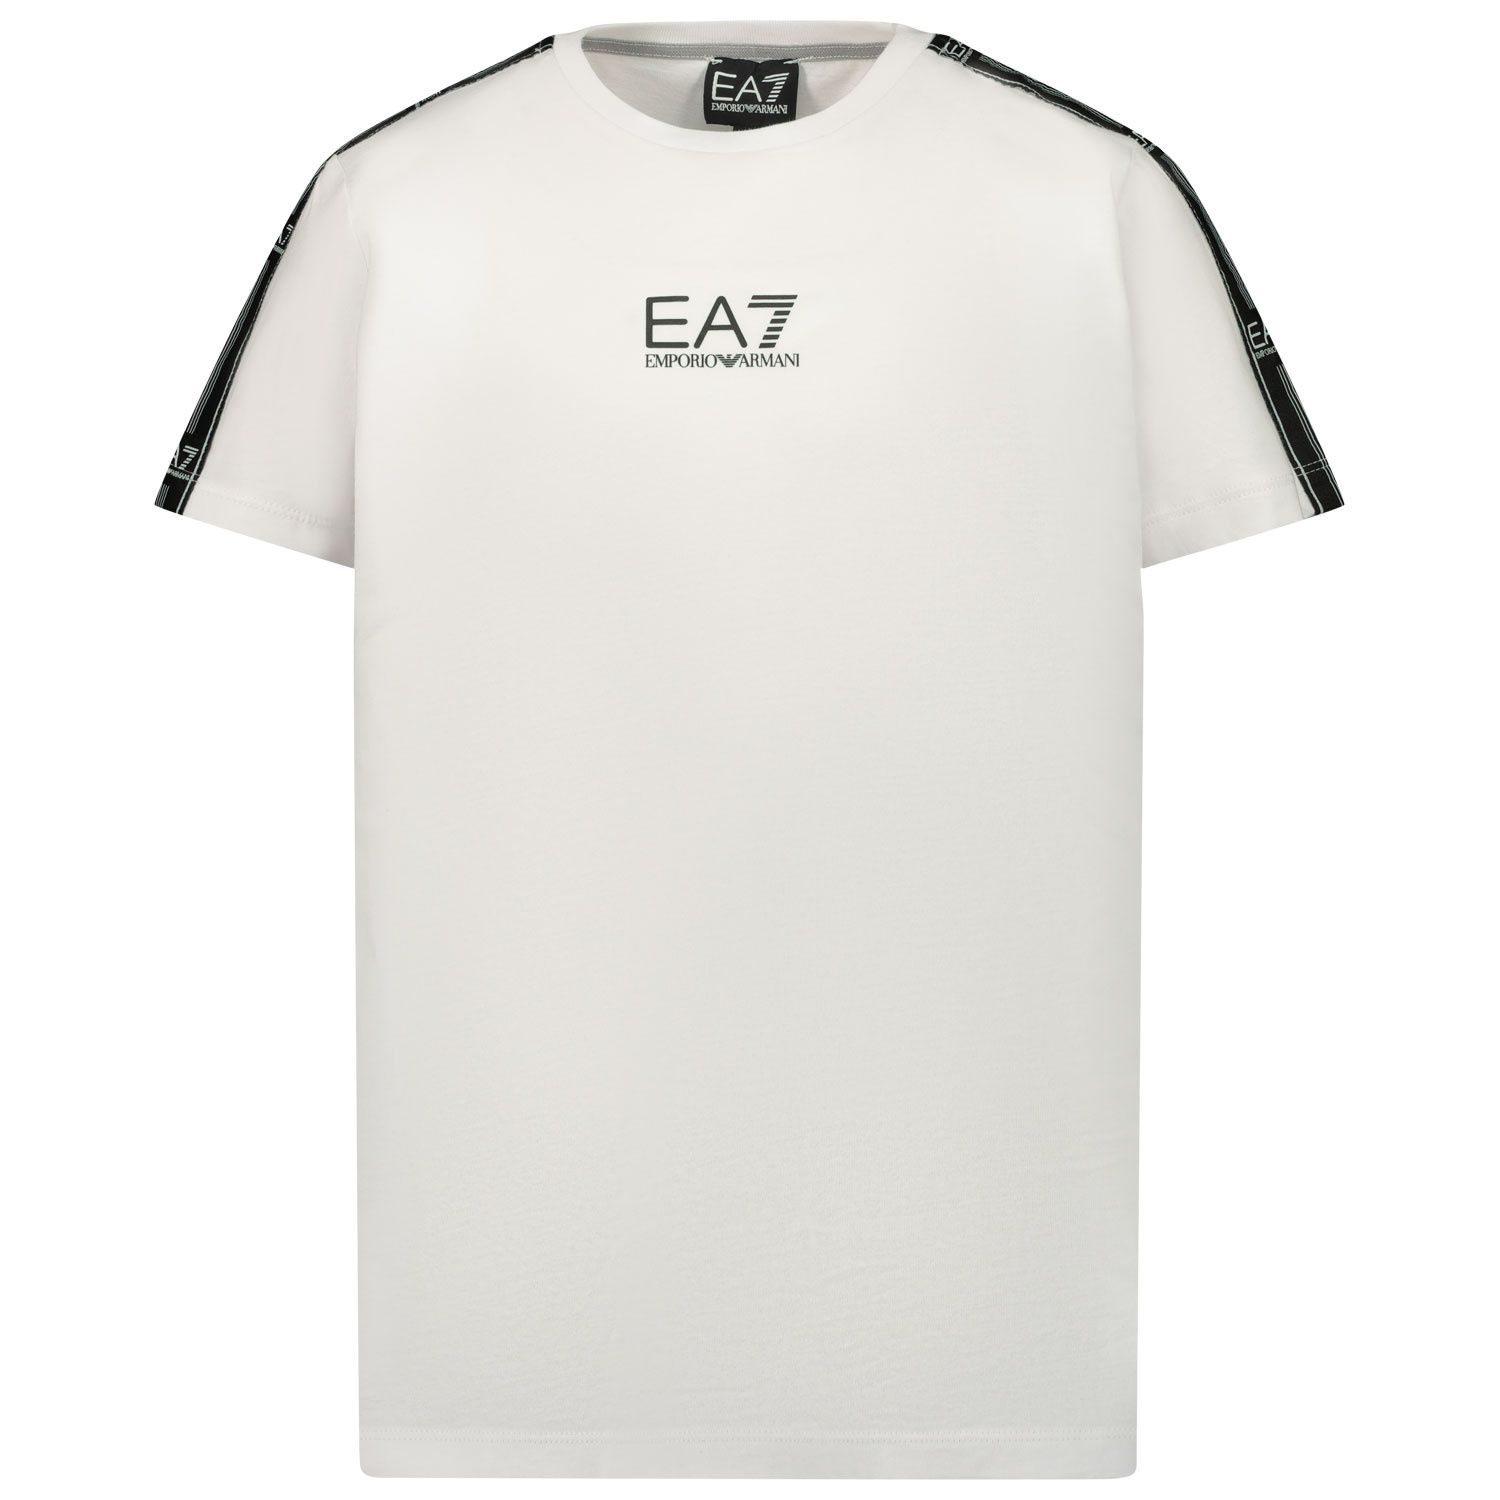 Picture of EA7 3KBT55 kids t-shirt white